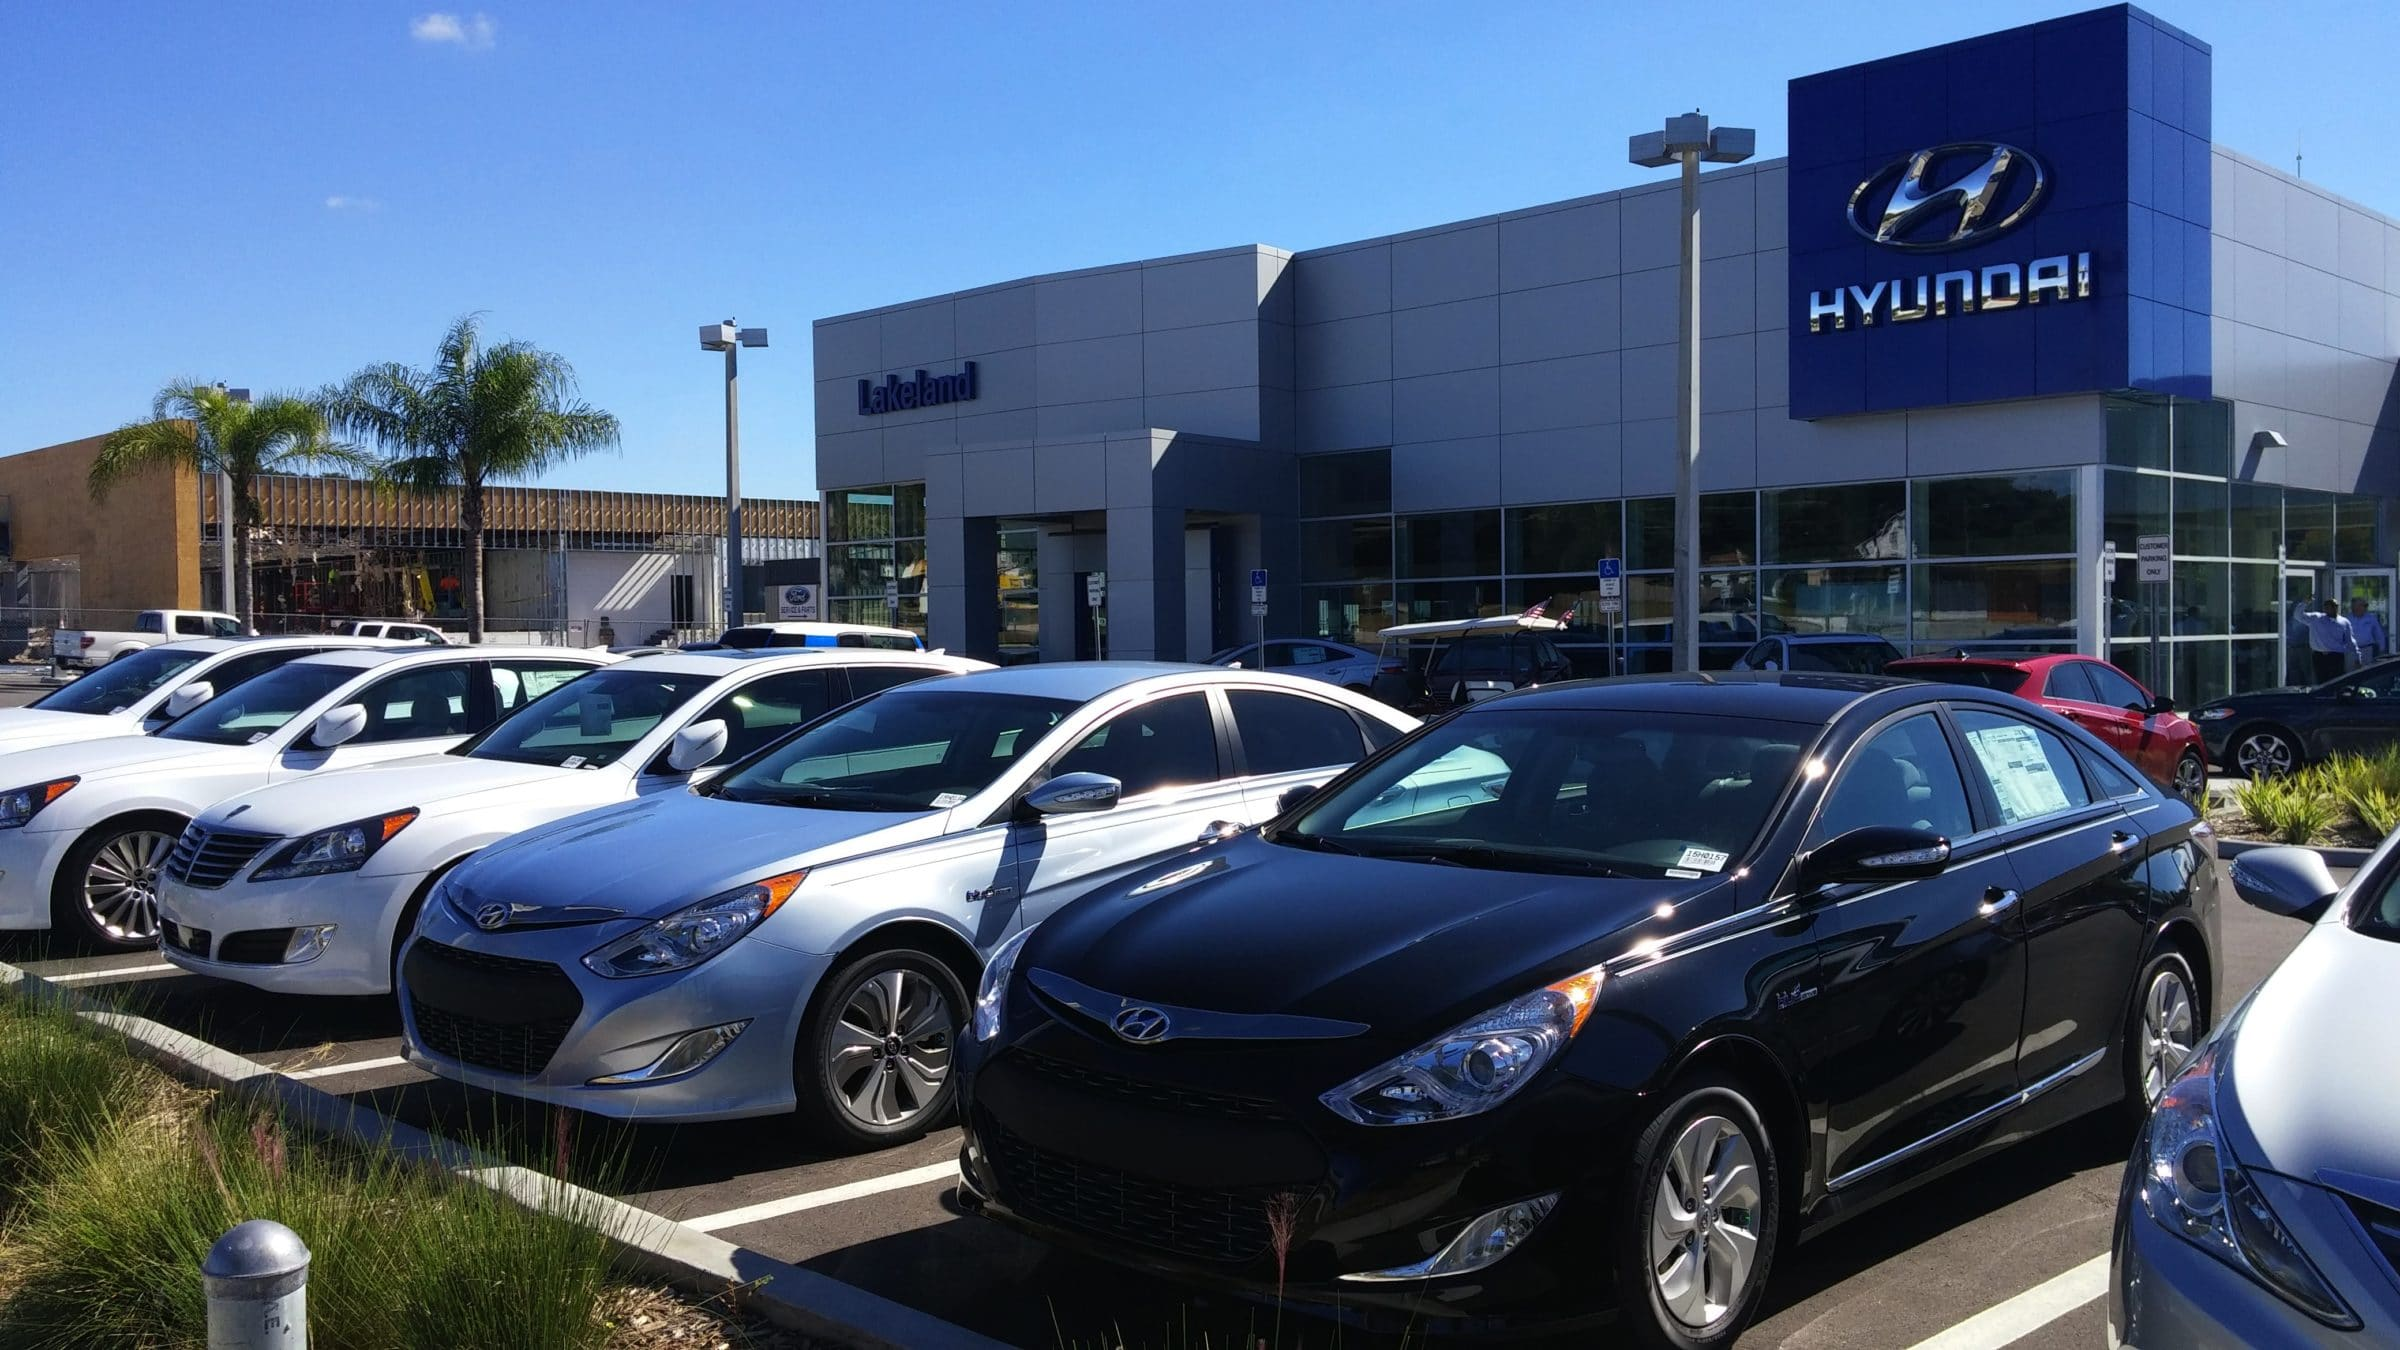 mrs of vehicle martin came a valarie finding into the pin hopes new lakeland hyundai in